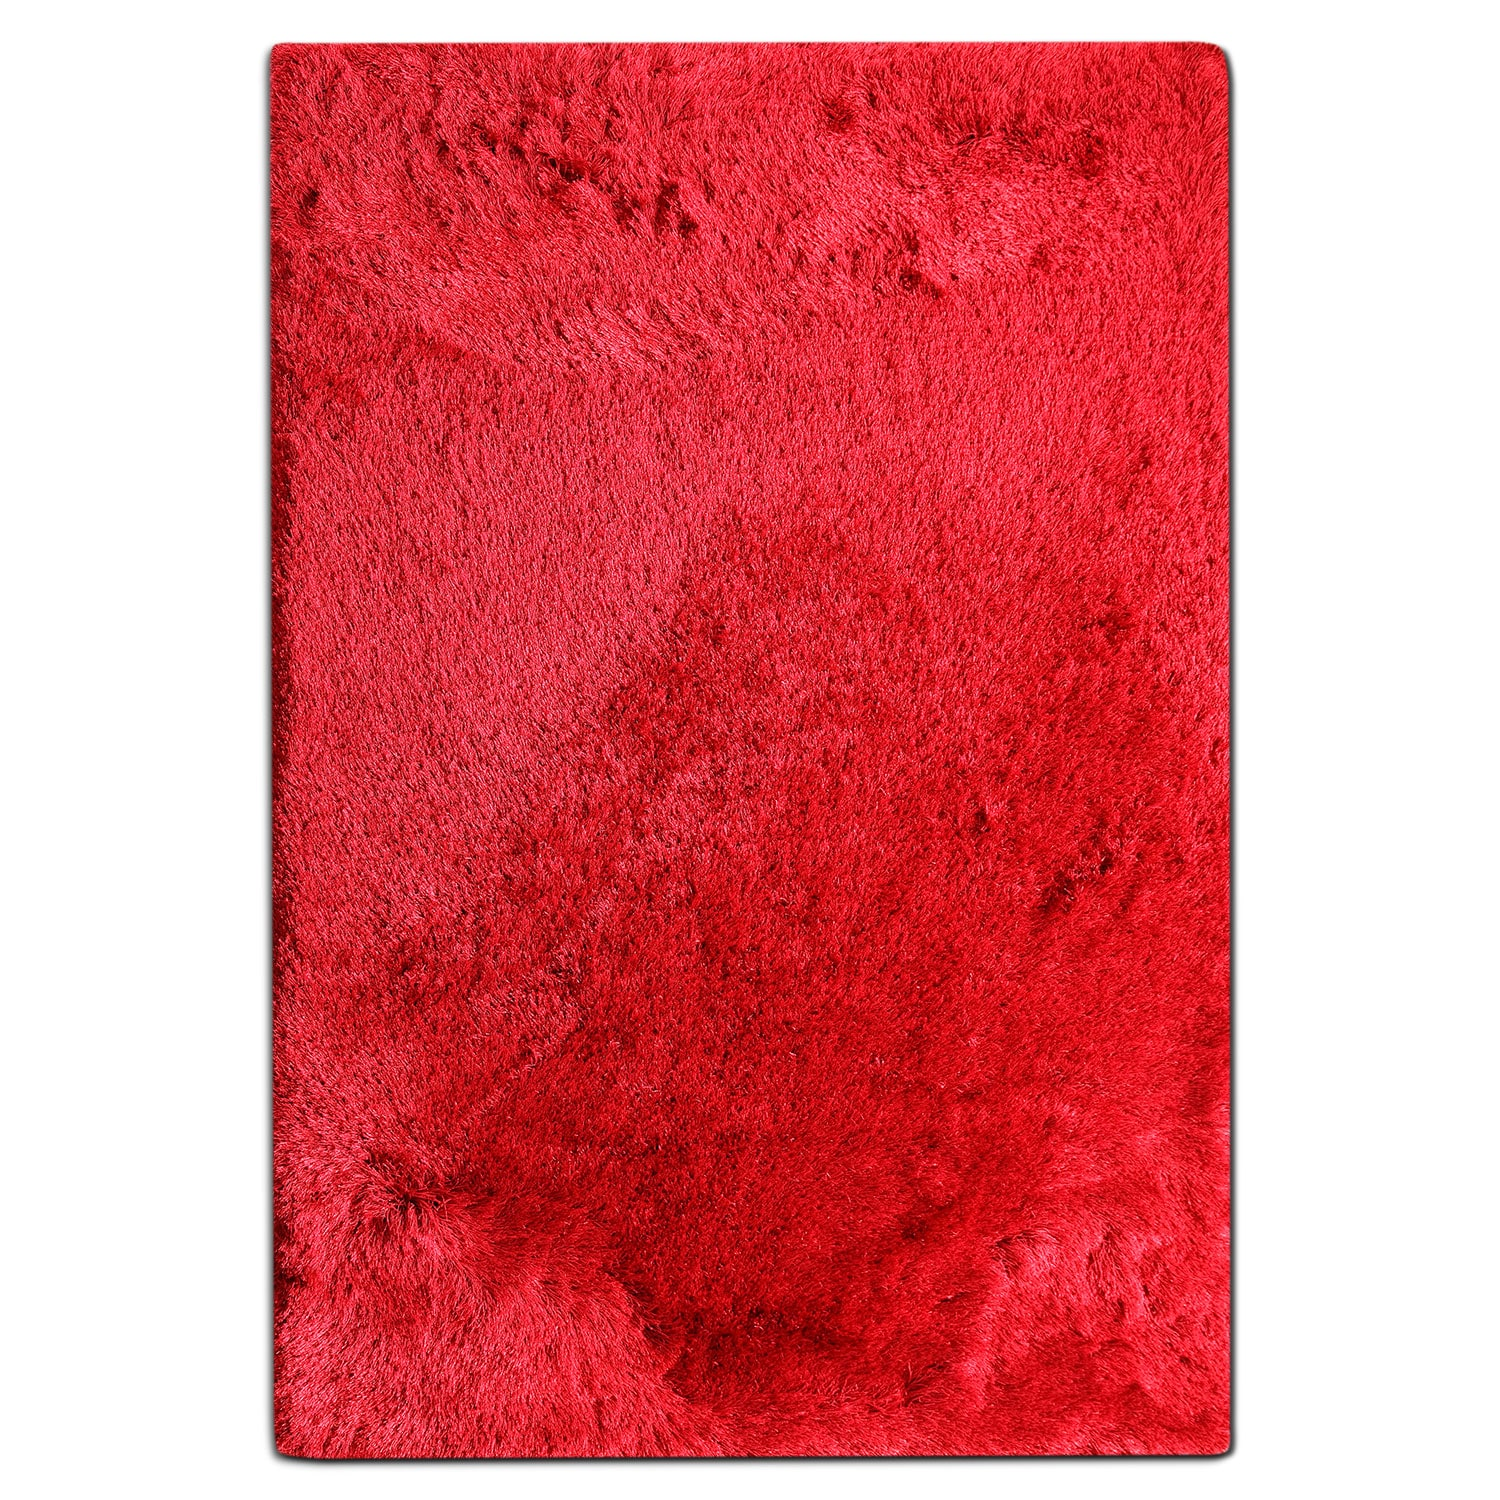 Rugs - Luxe 8' x 10' Area Rug - Ruby